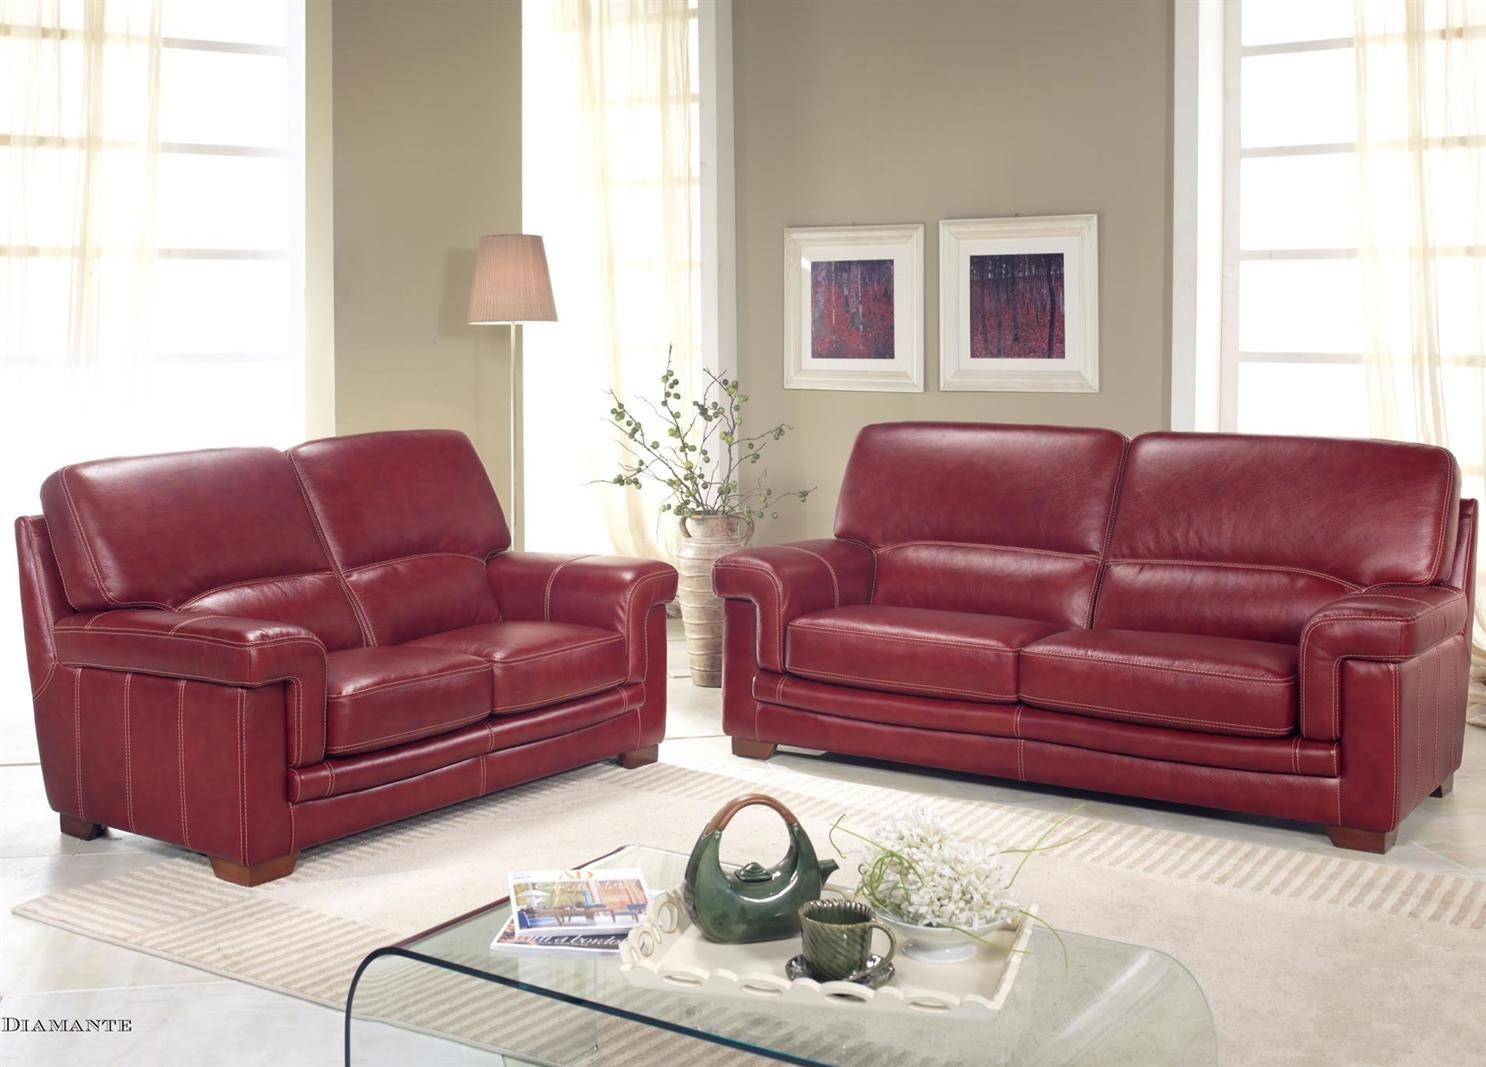 Leather Furniture Traveler Collection: Bardi Diamante Leather Sofa Collection From Tannahill